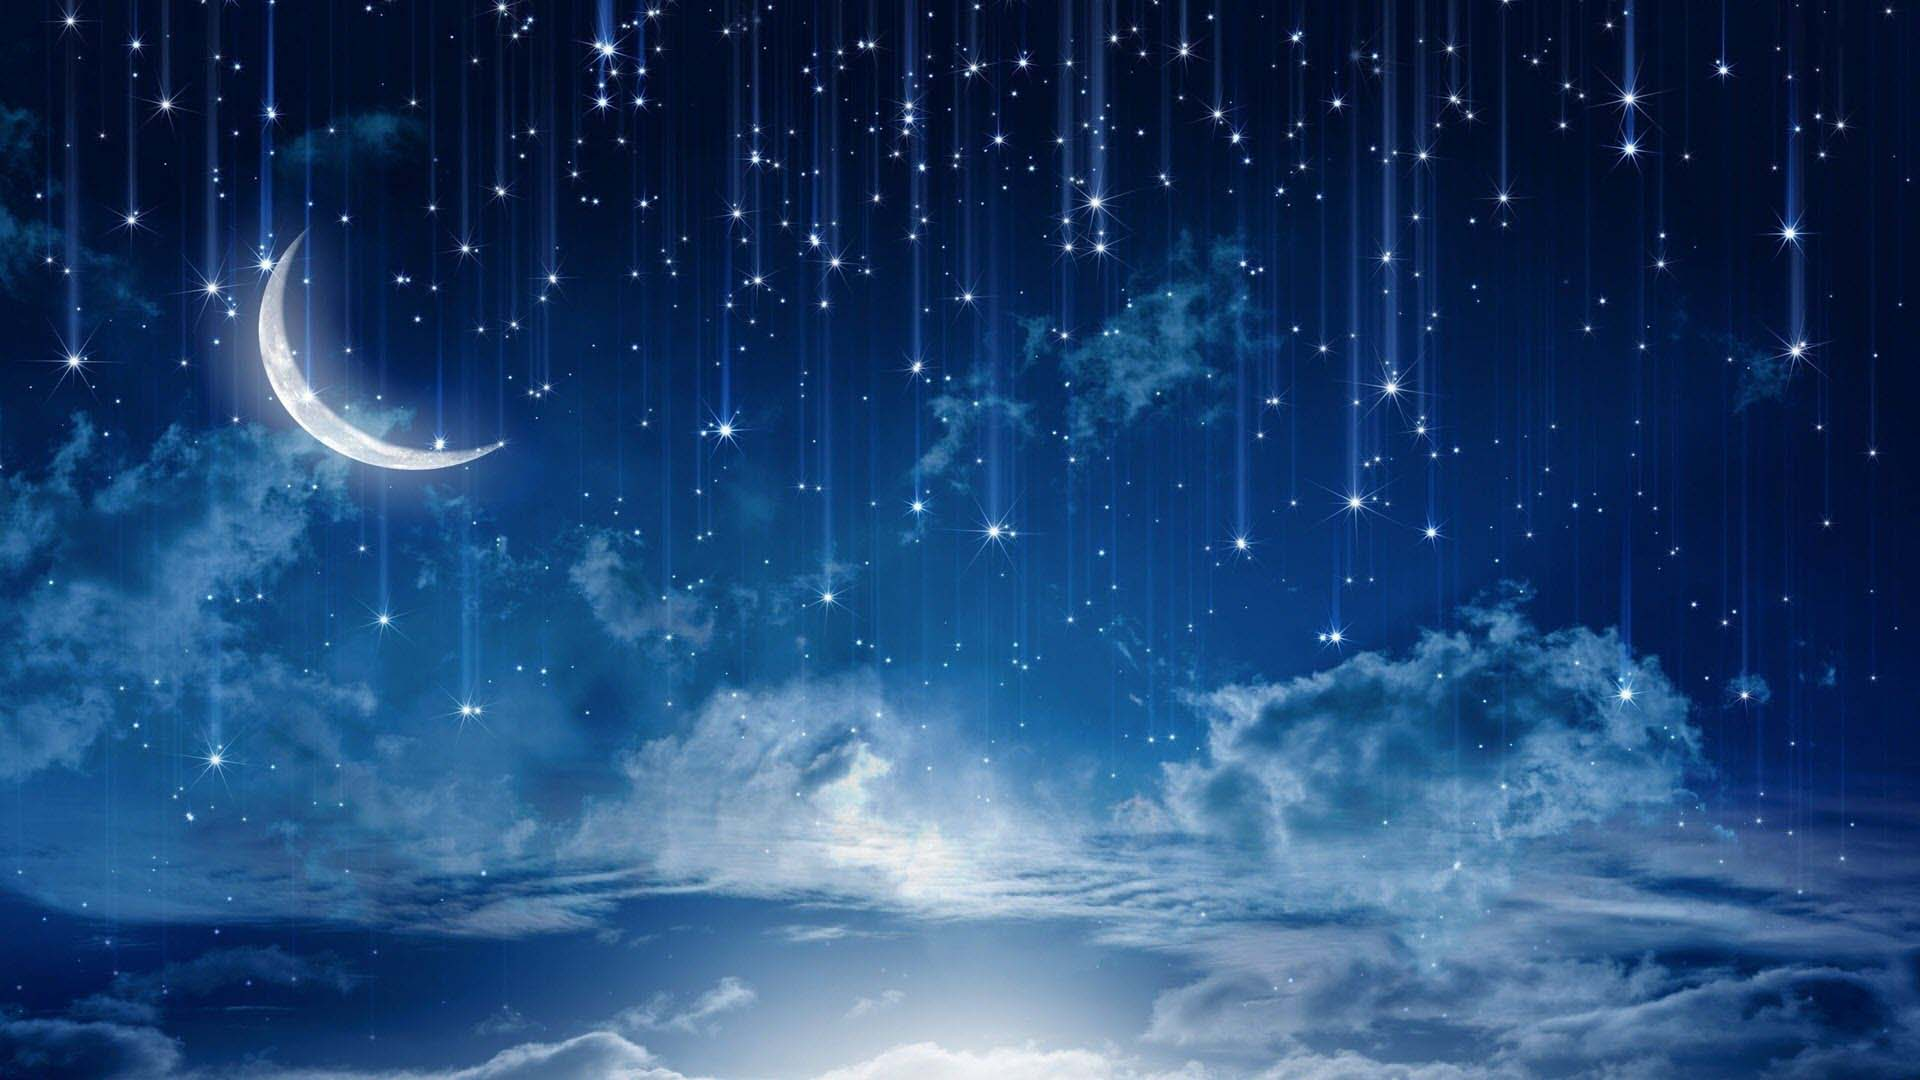 Night sky wallpaper 1920x1080